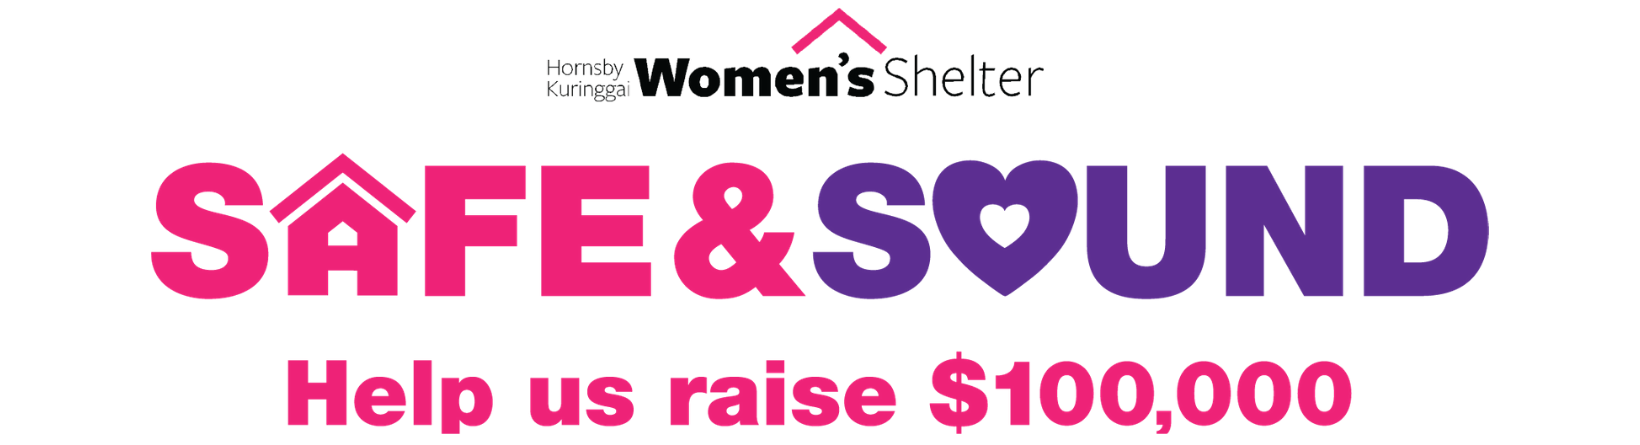 This is an image for the Safe and Sound HKWS campaign to raise $100,000 for the shelters